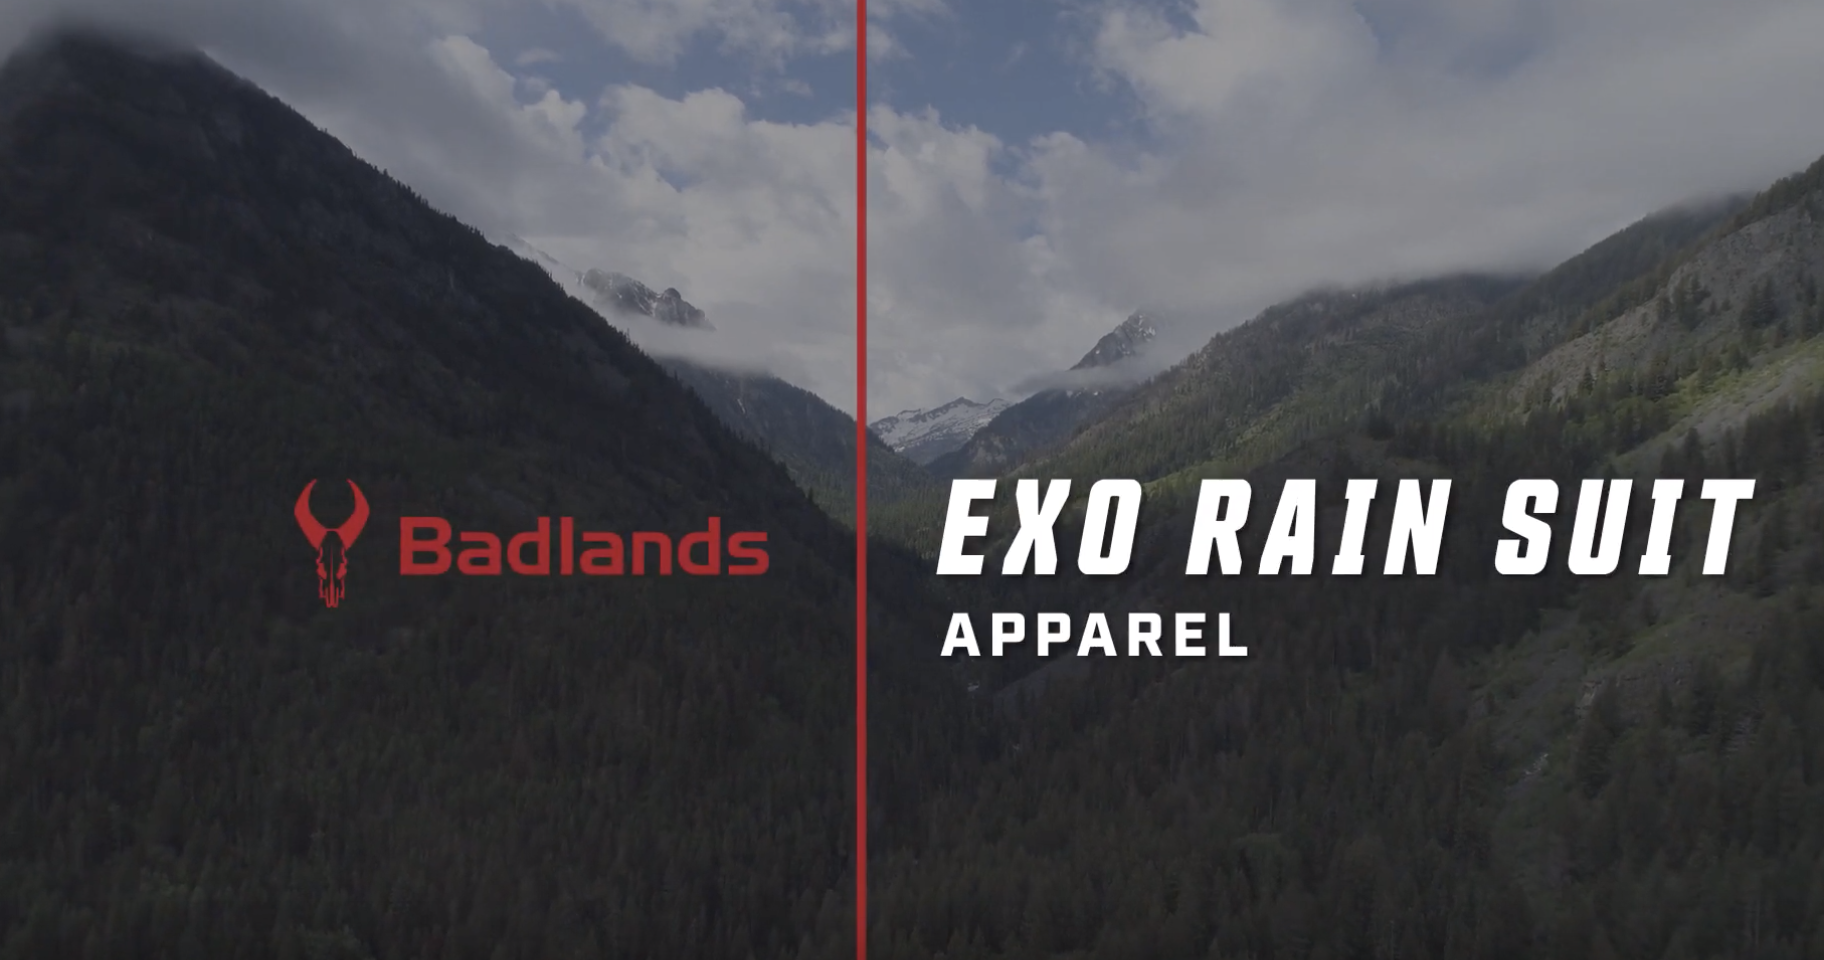 Learn more about Exo Rain Suit Apparel